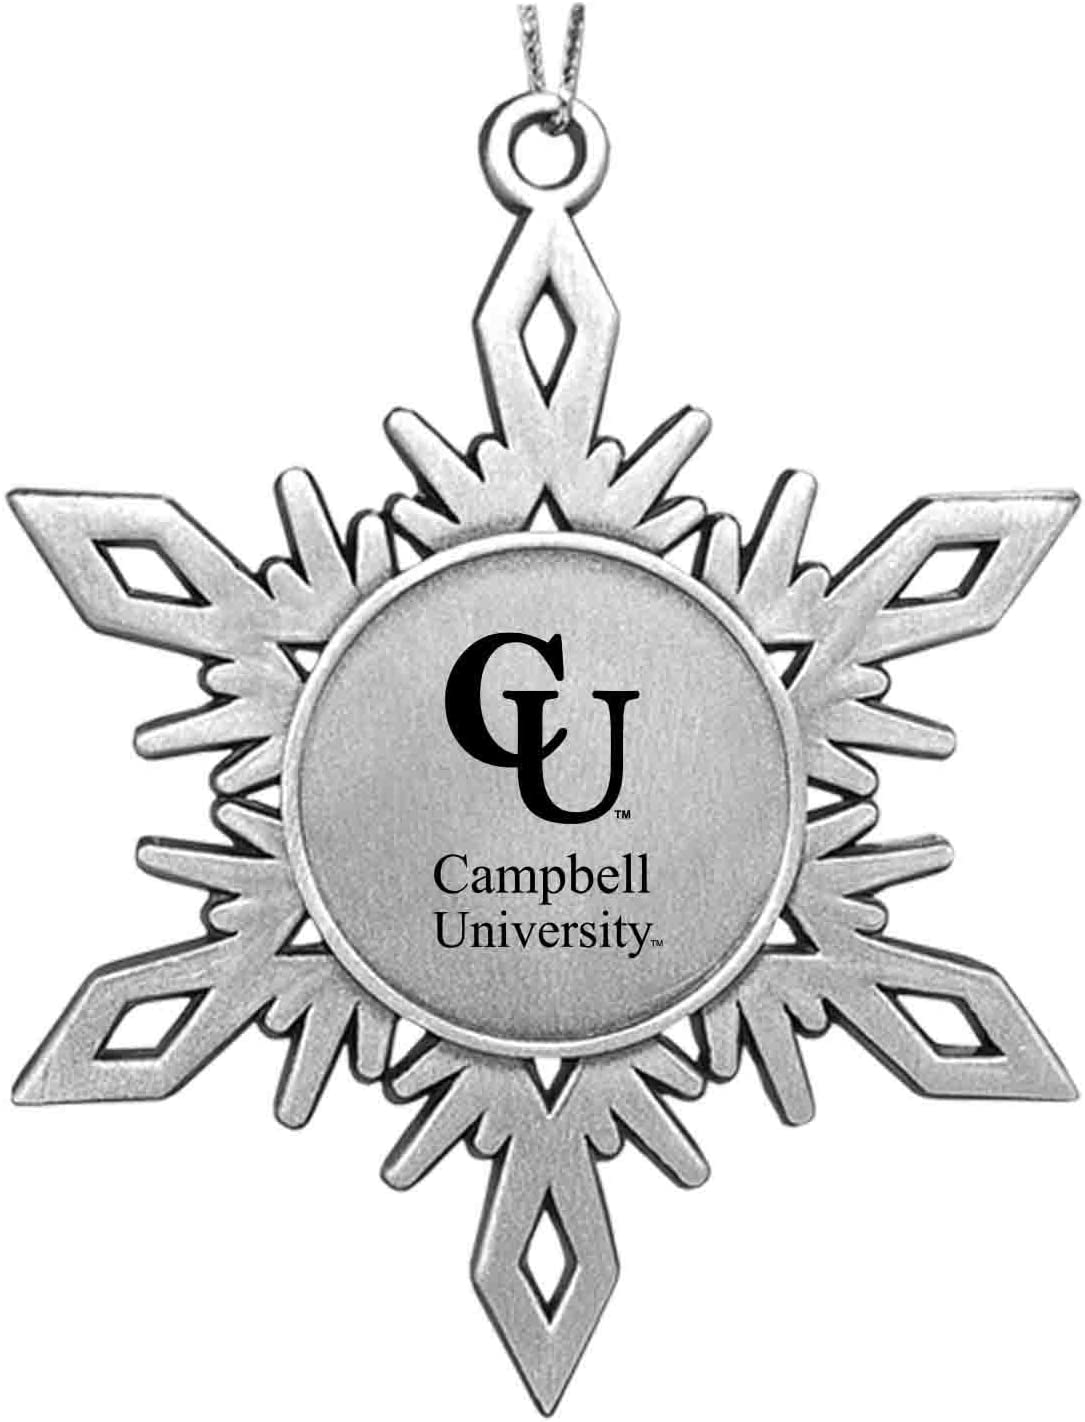 LXG Inc Campbell University Snowflake Ornament Pewter